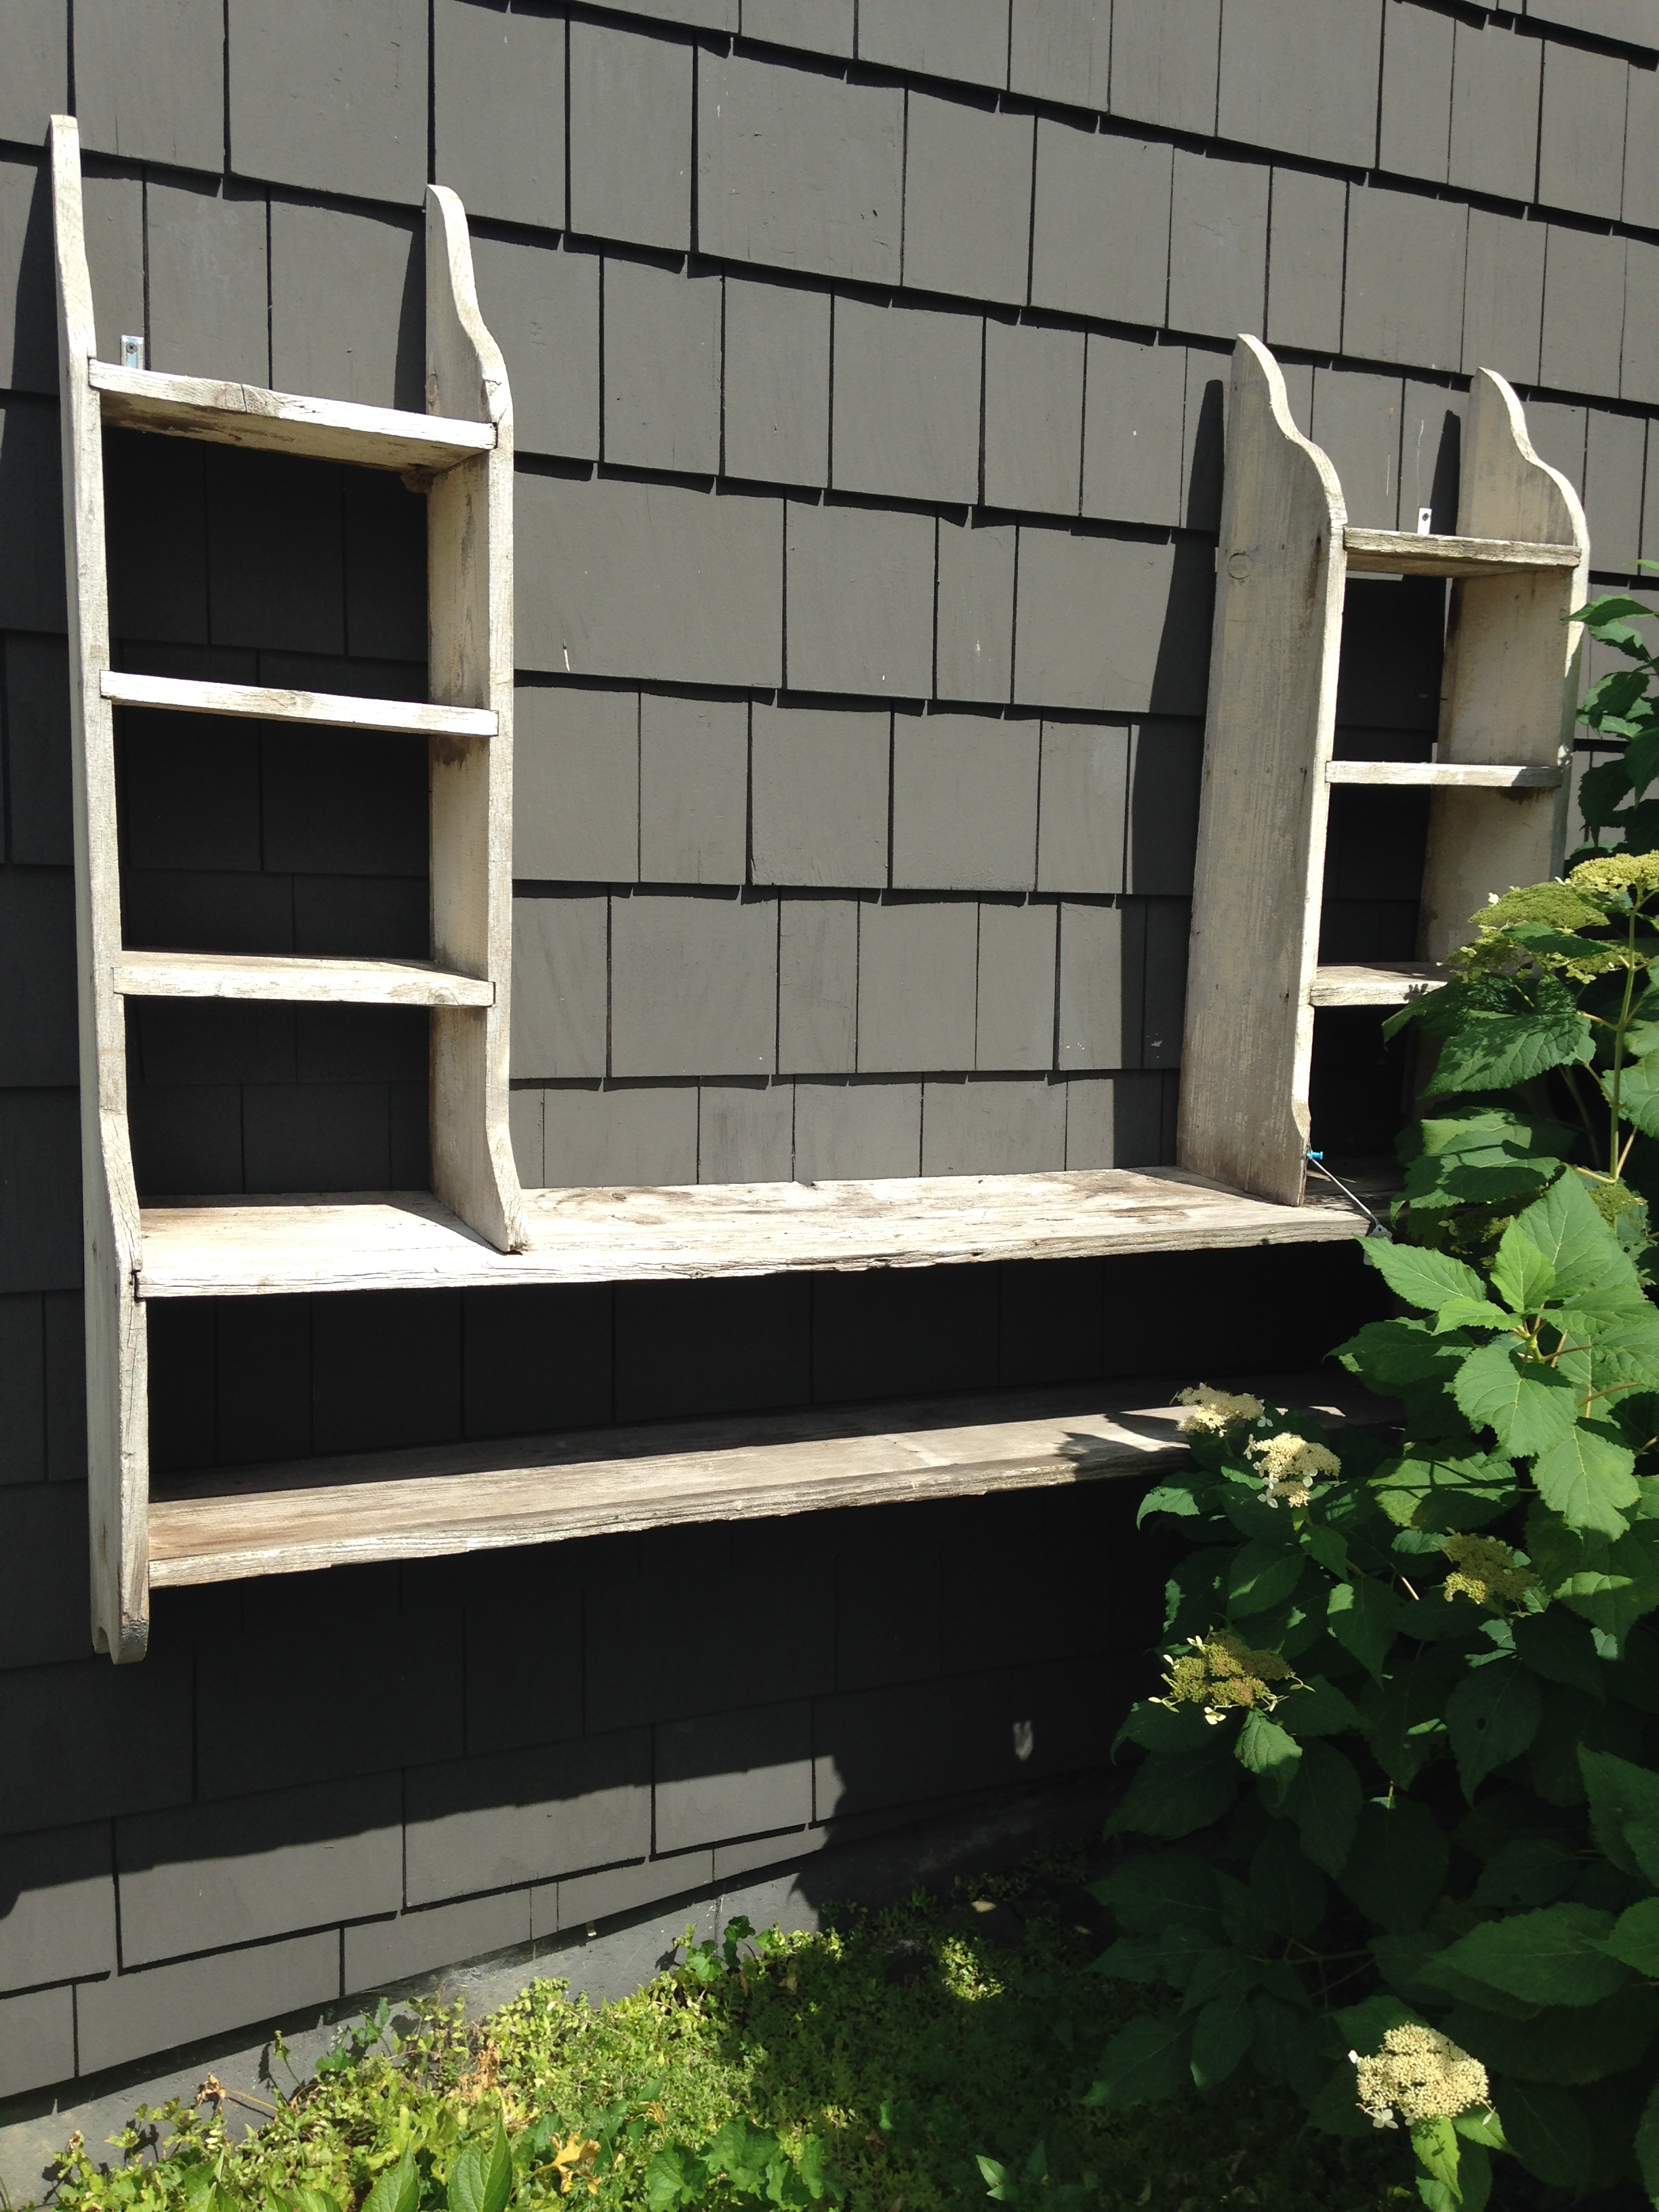 Salvage Shelving